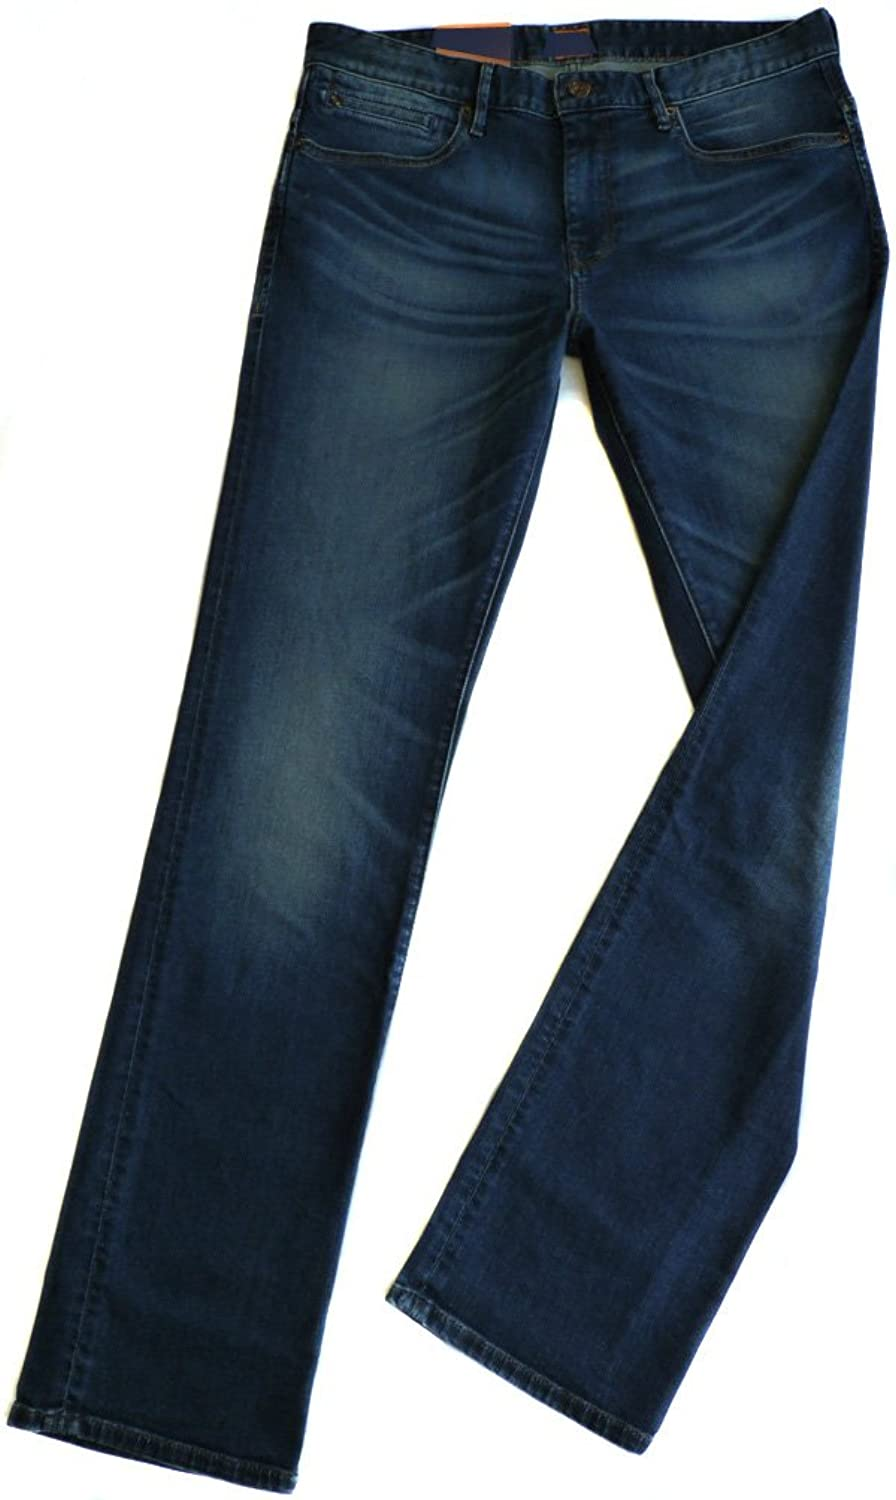 Hugo Boss Stretch Jeans W38/L34 Orange24 Barcelona Tradition 50299420  Regular: Amazon.co.uk: Clothing